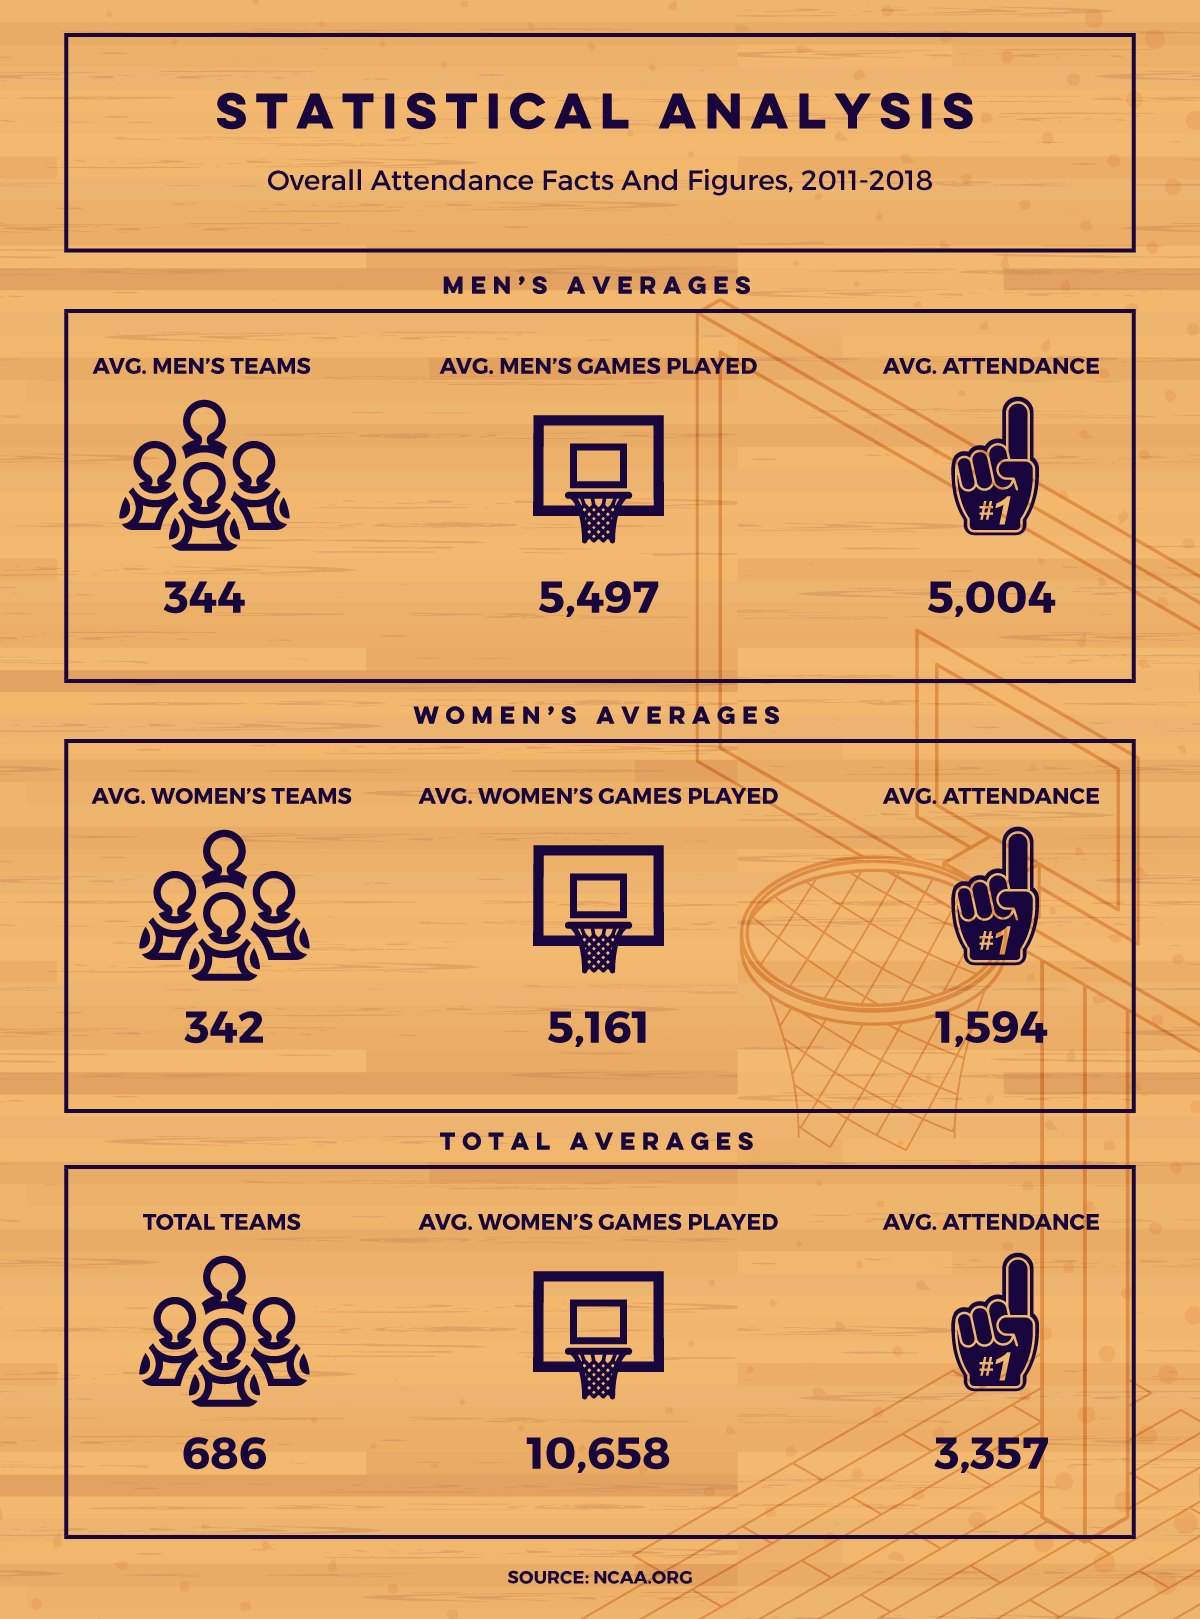 Overall basketball attendance facts